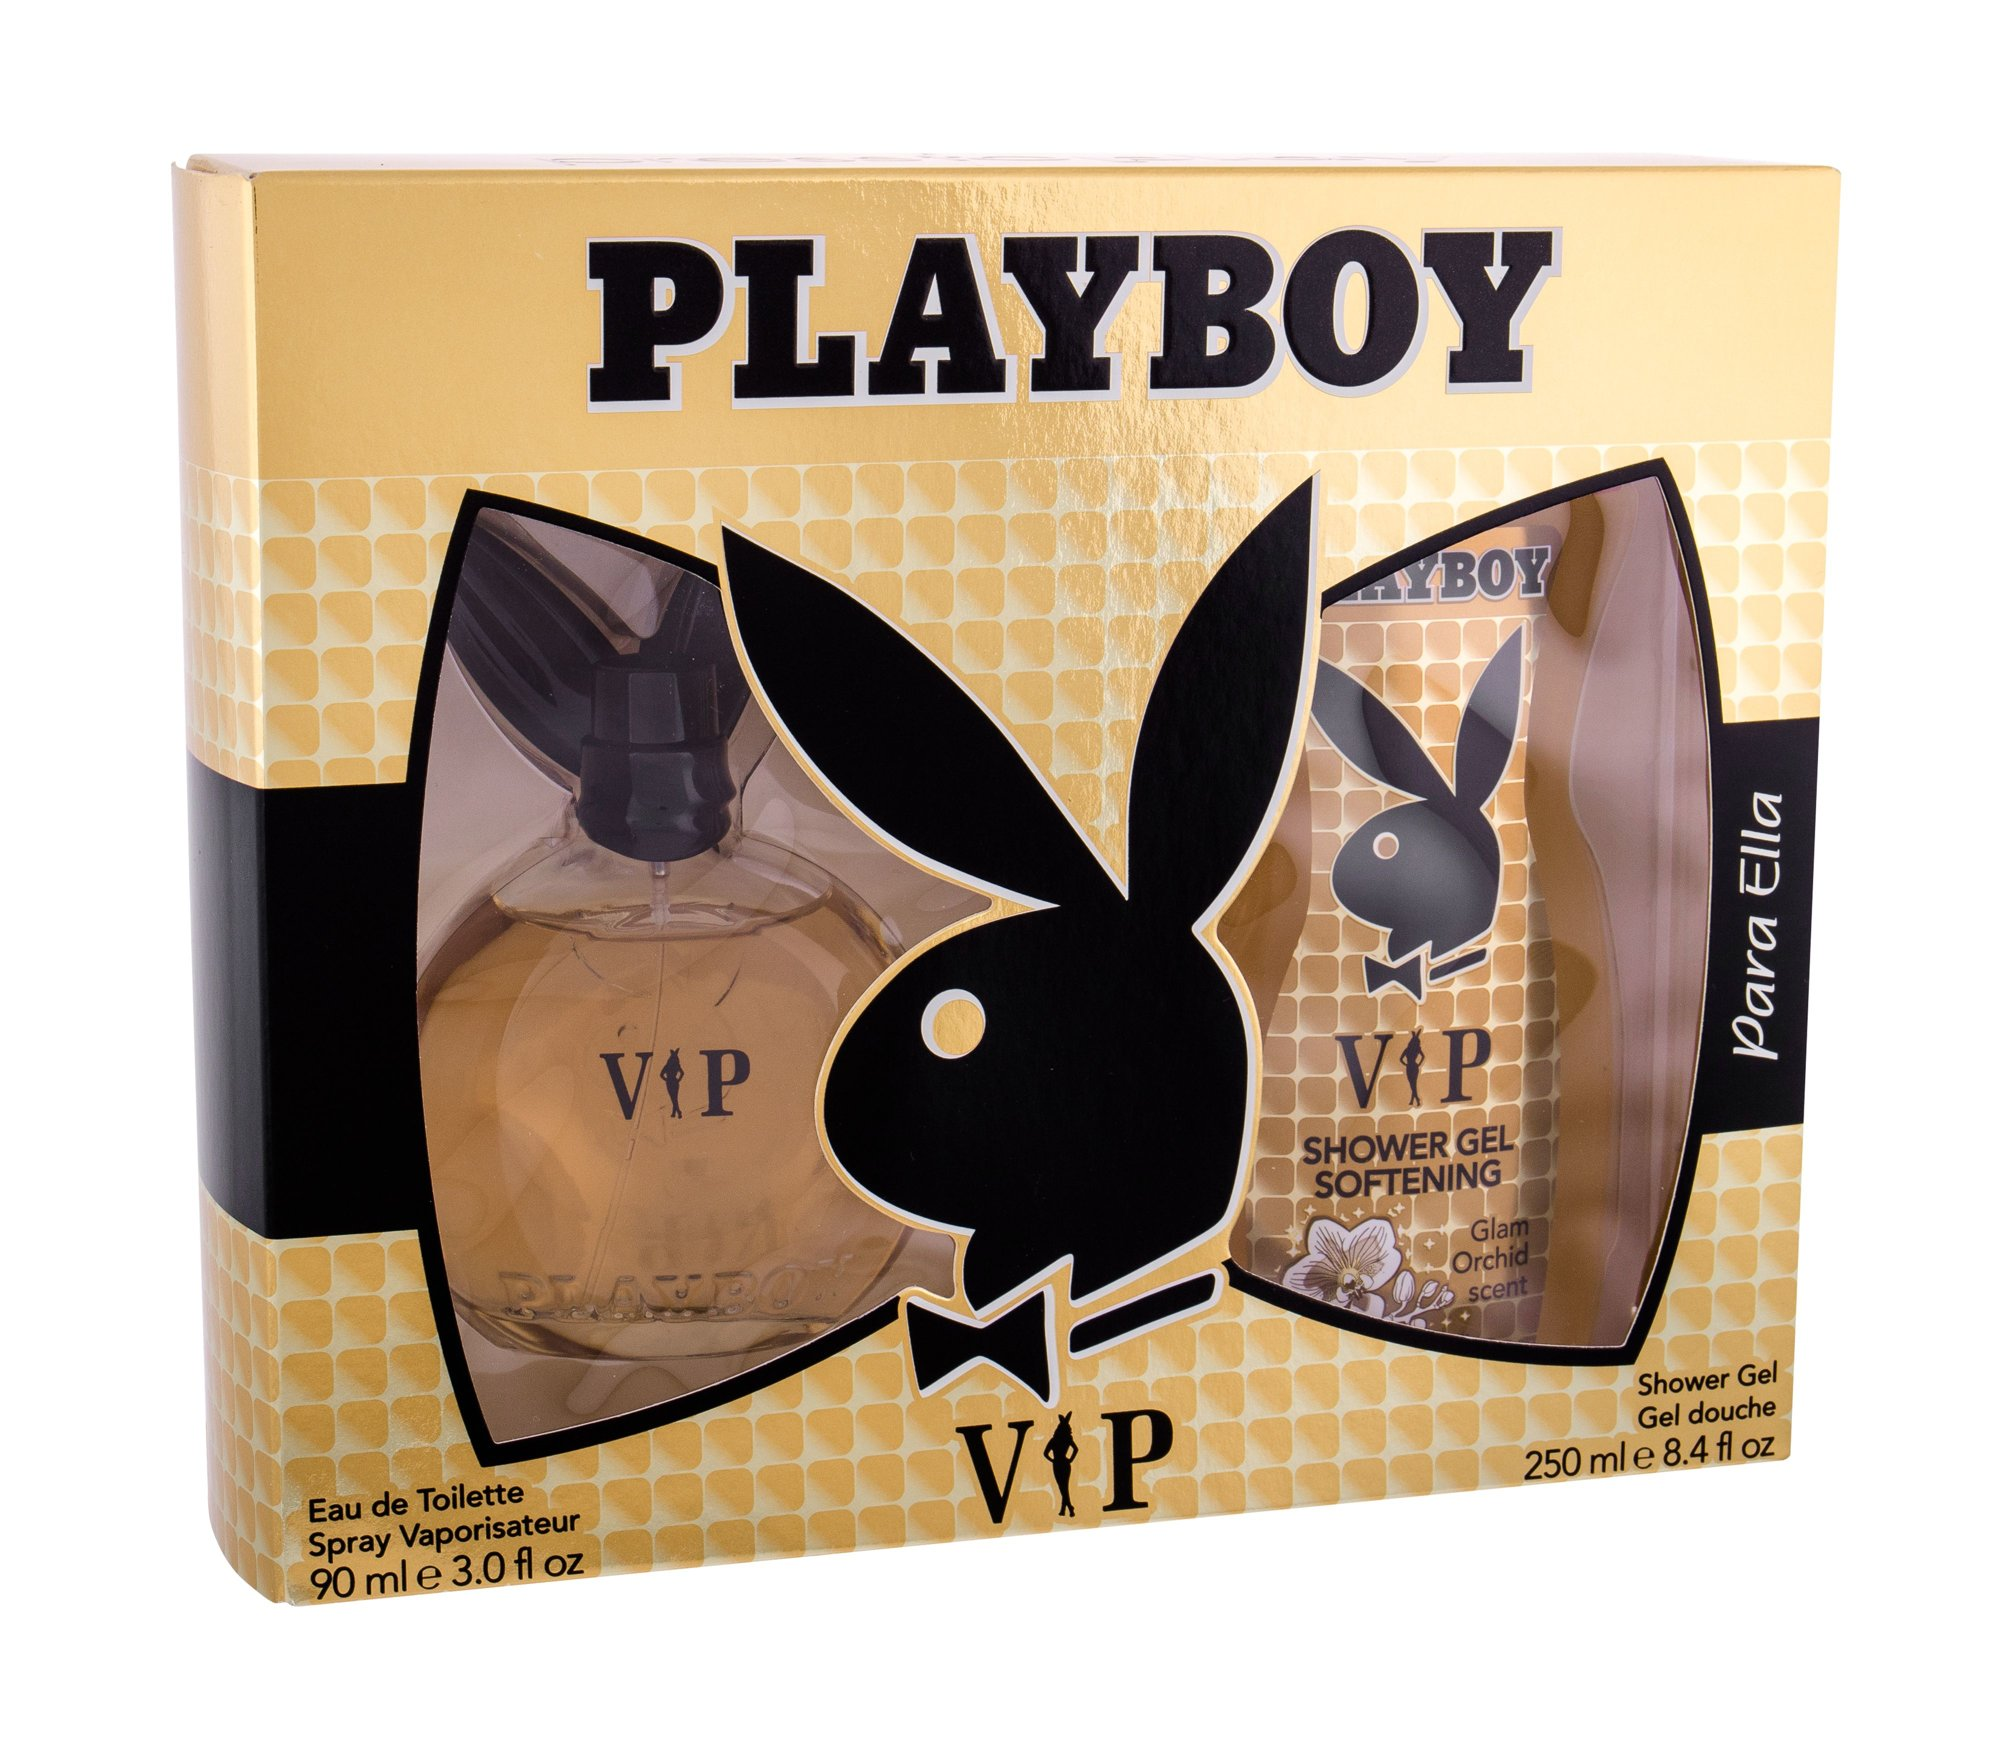 Playboy VIP For Her Eau de Toilette 90ml